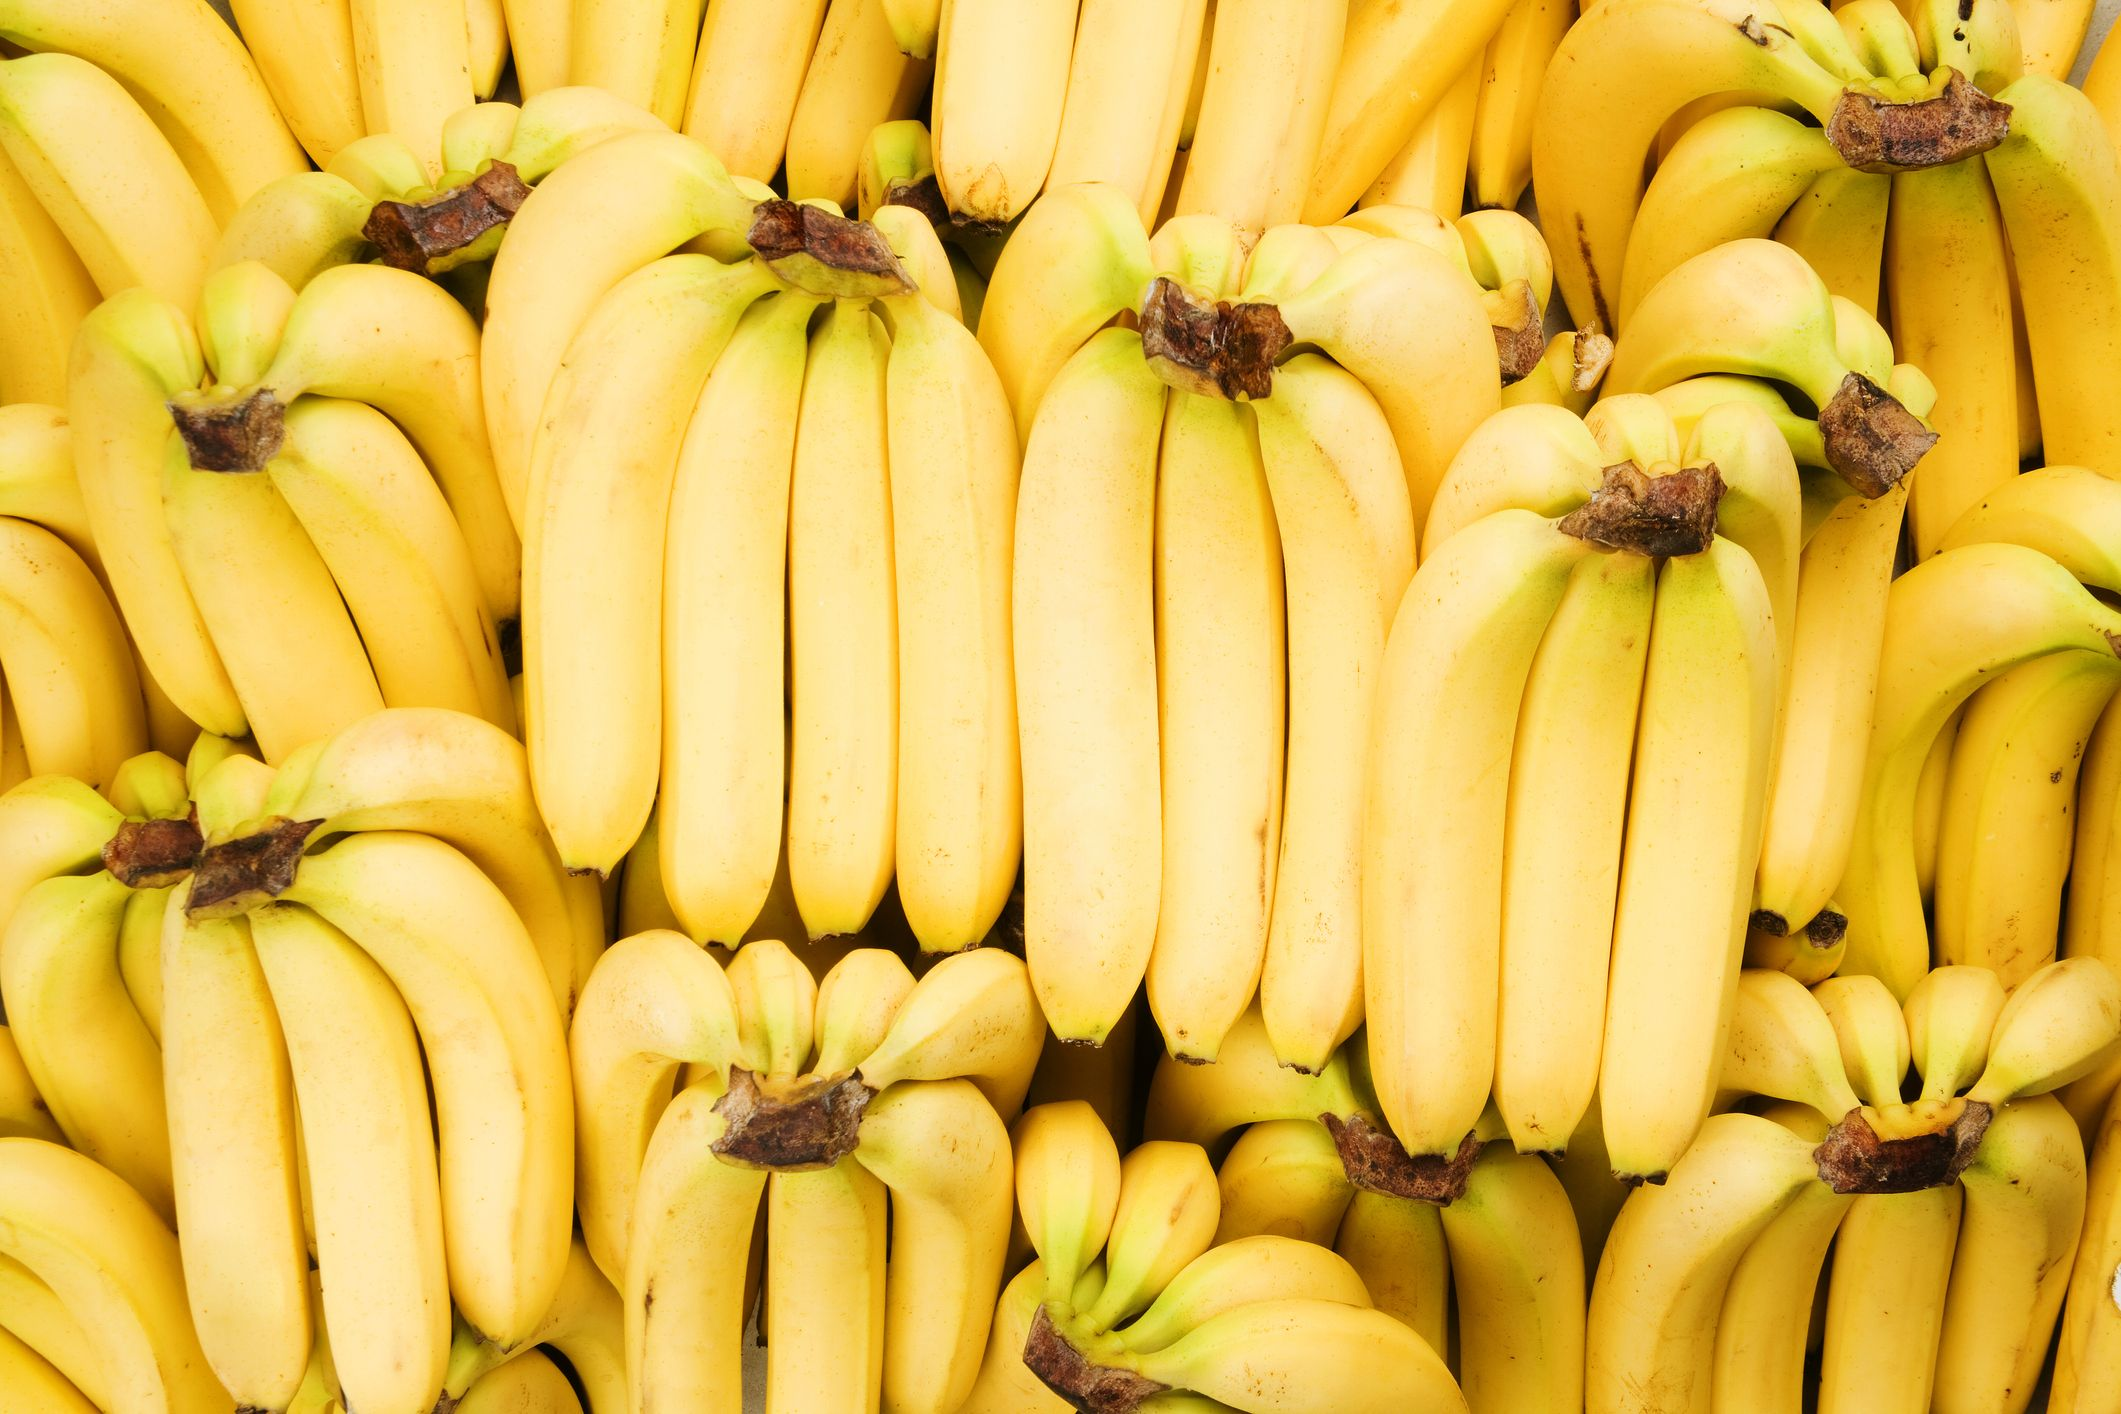 This Banana-Killing Fungus Could Cause The Fruit To Go Extinct